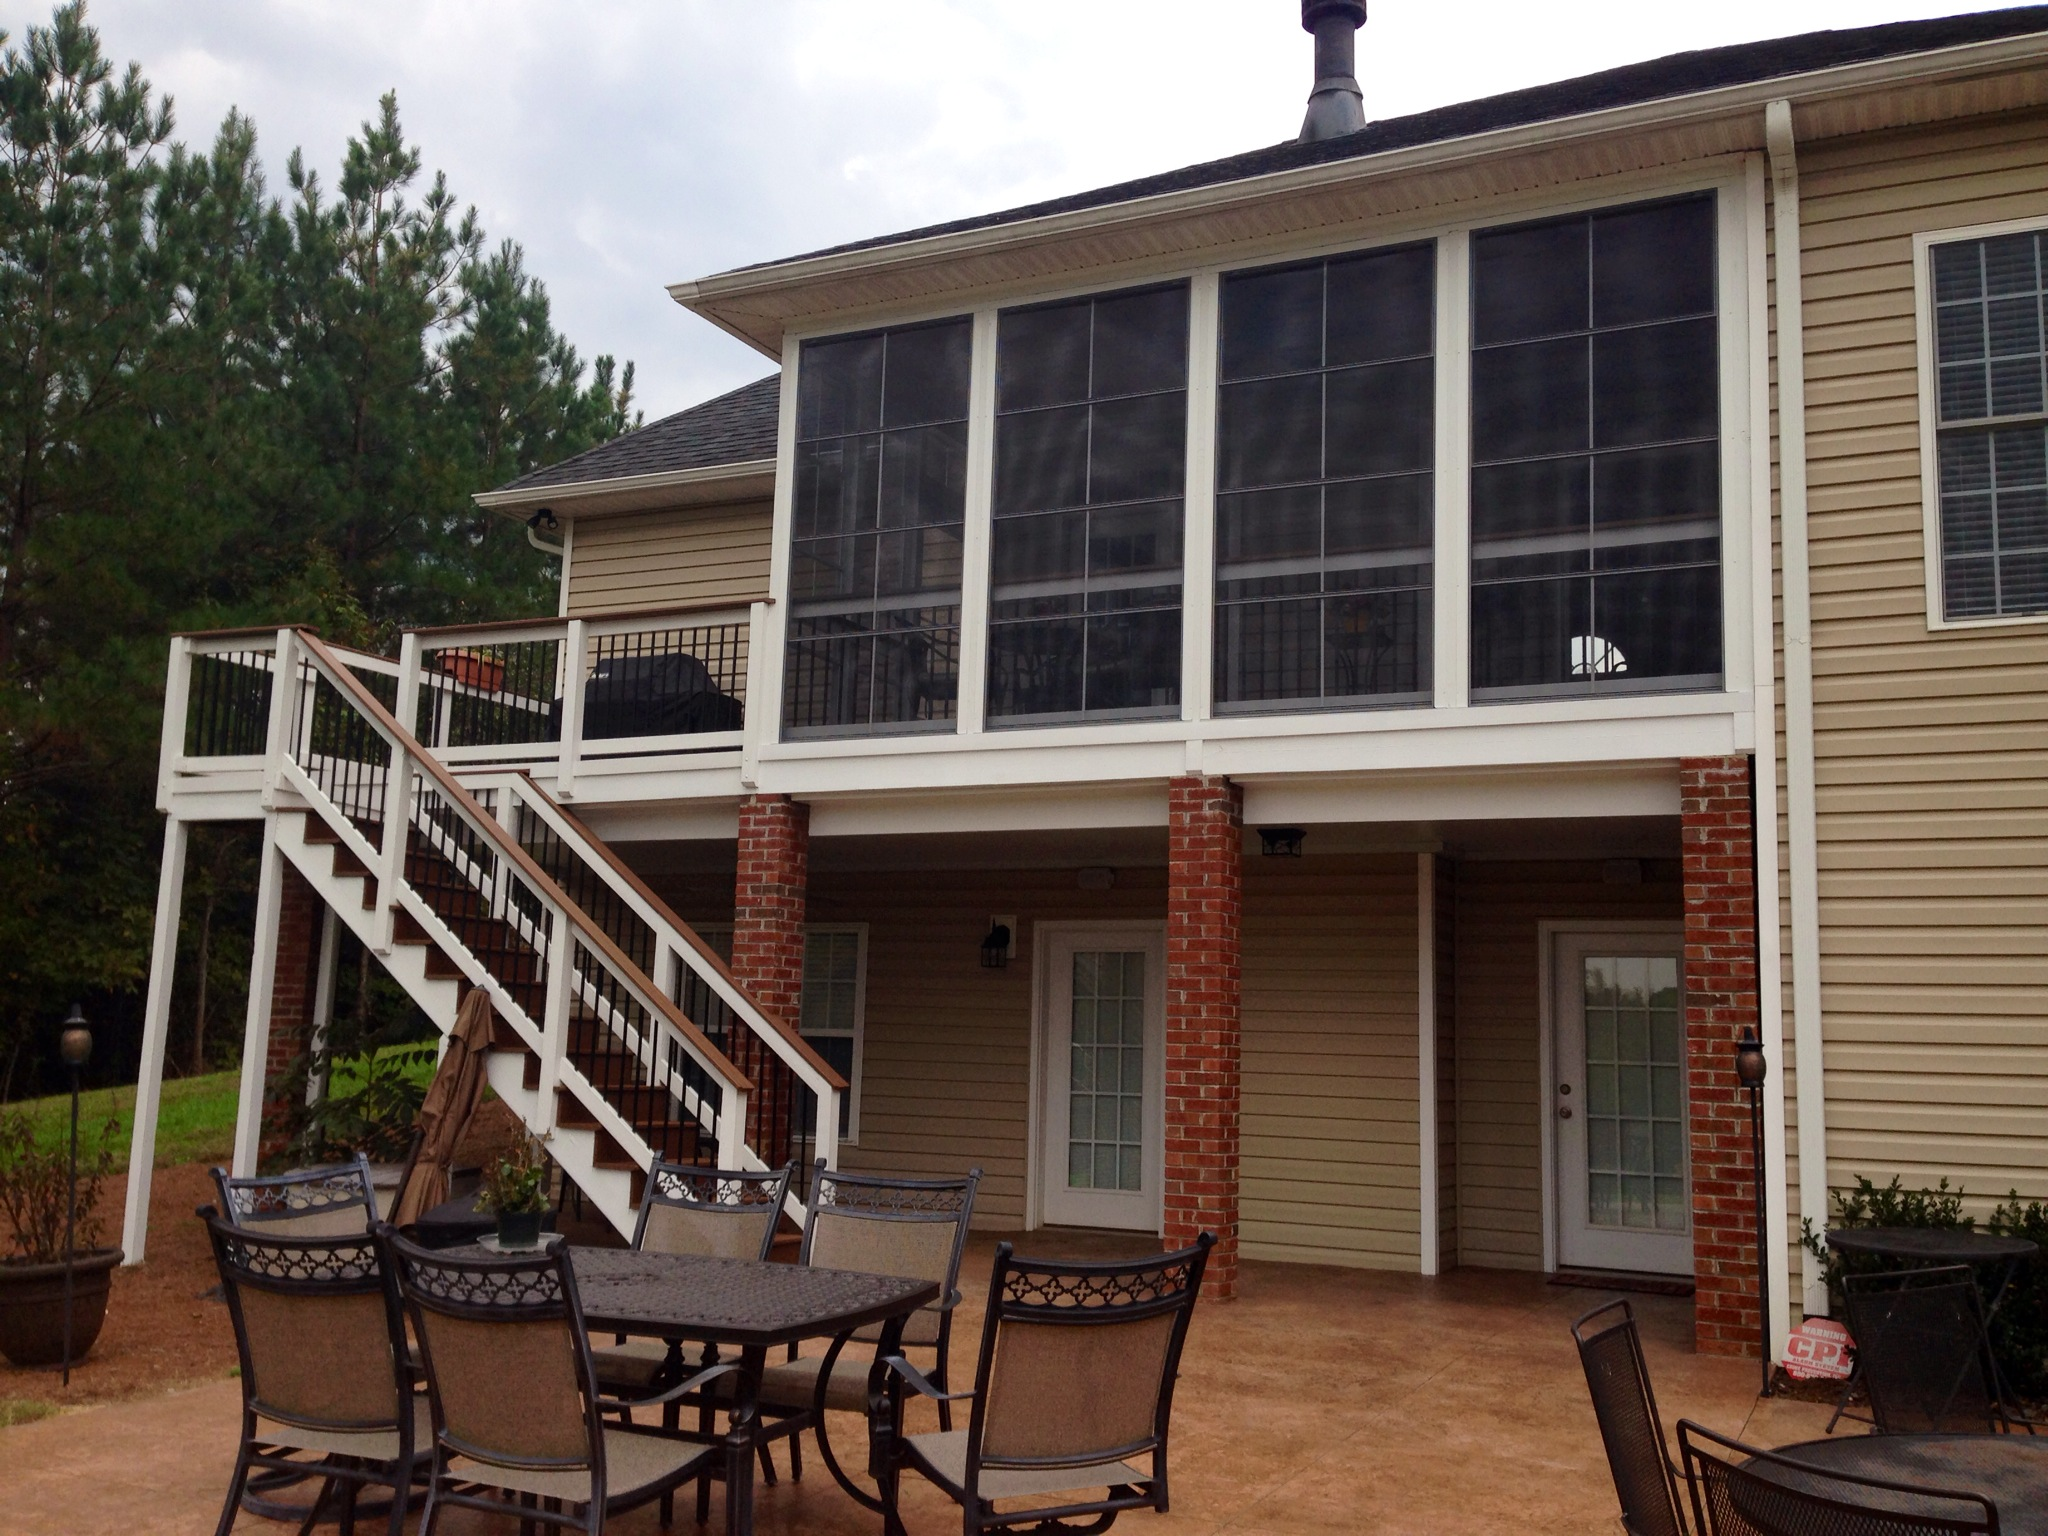 Eze breeze windows in raleigh for Porch durham